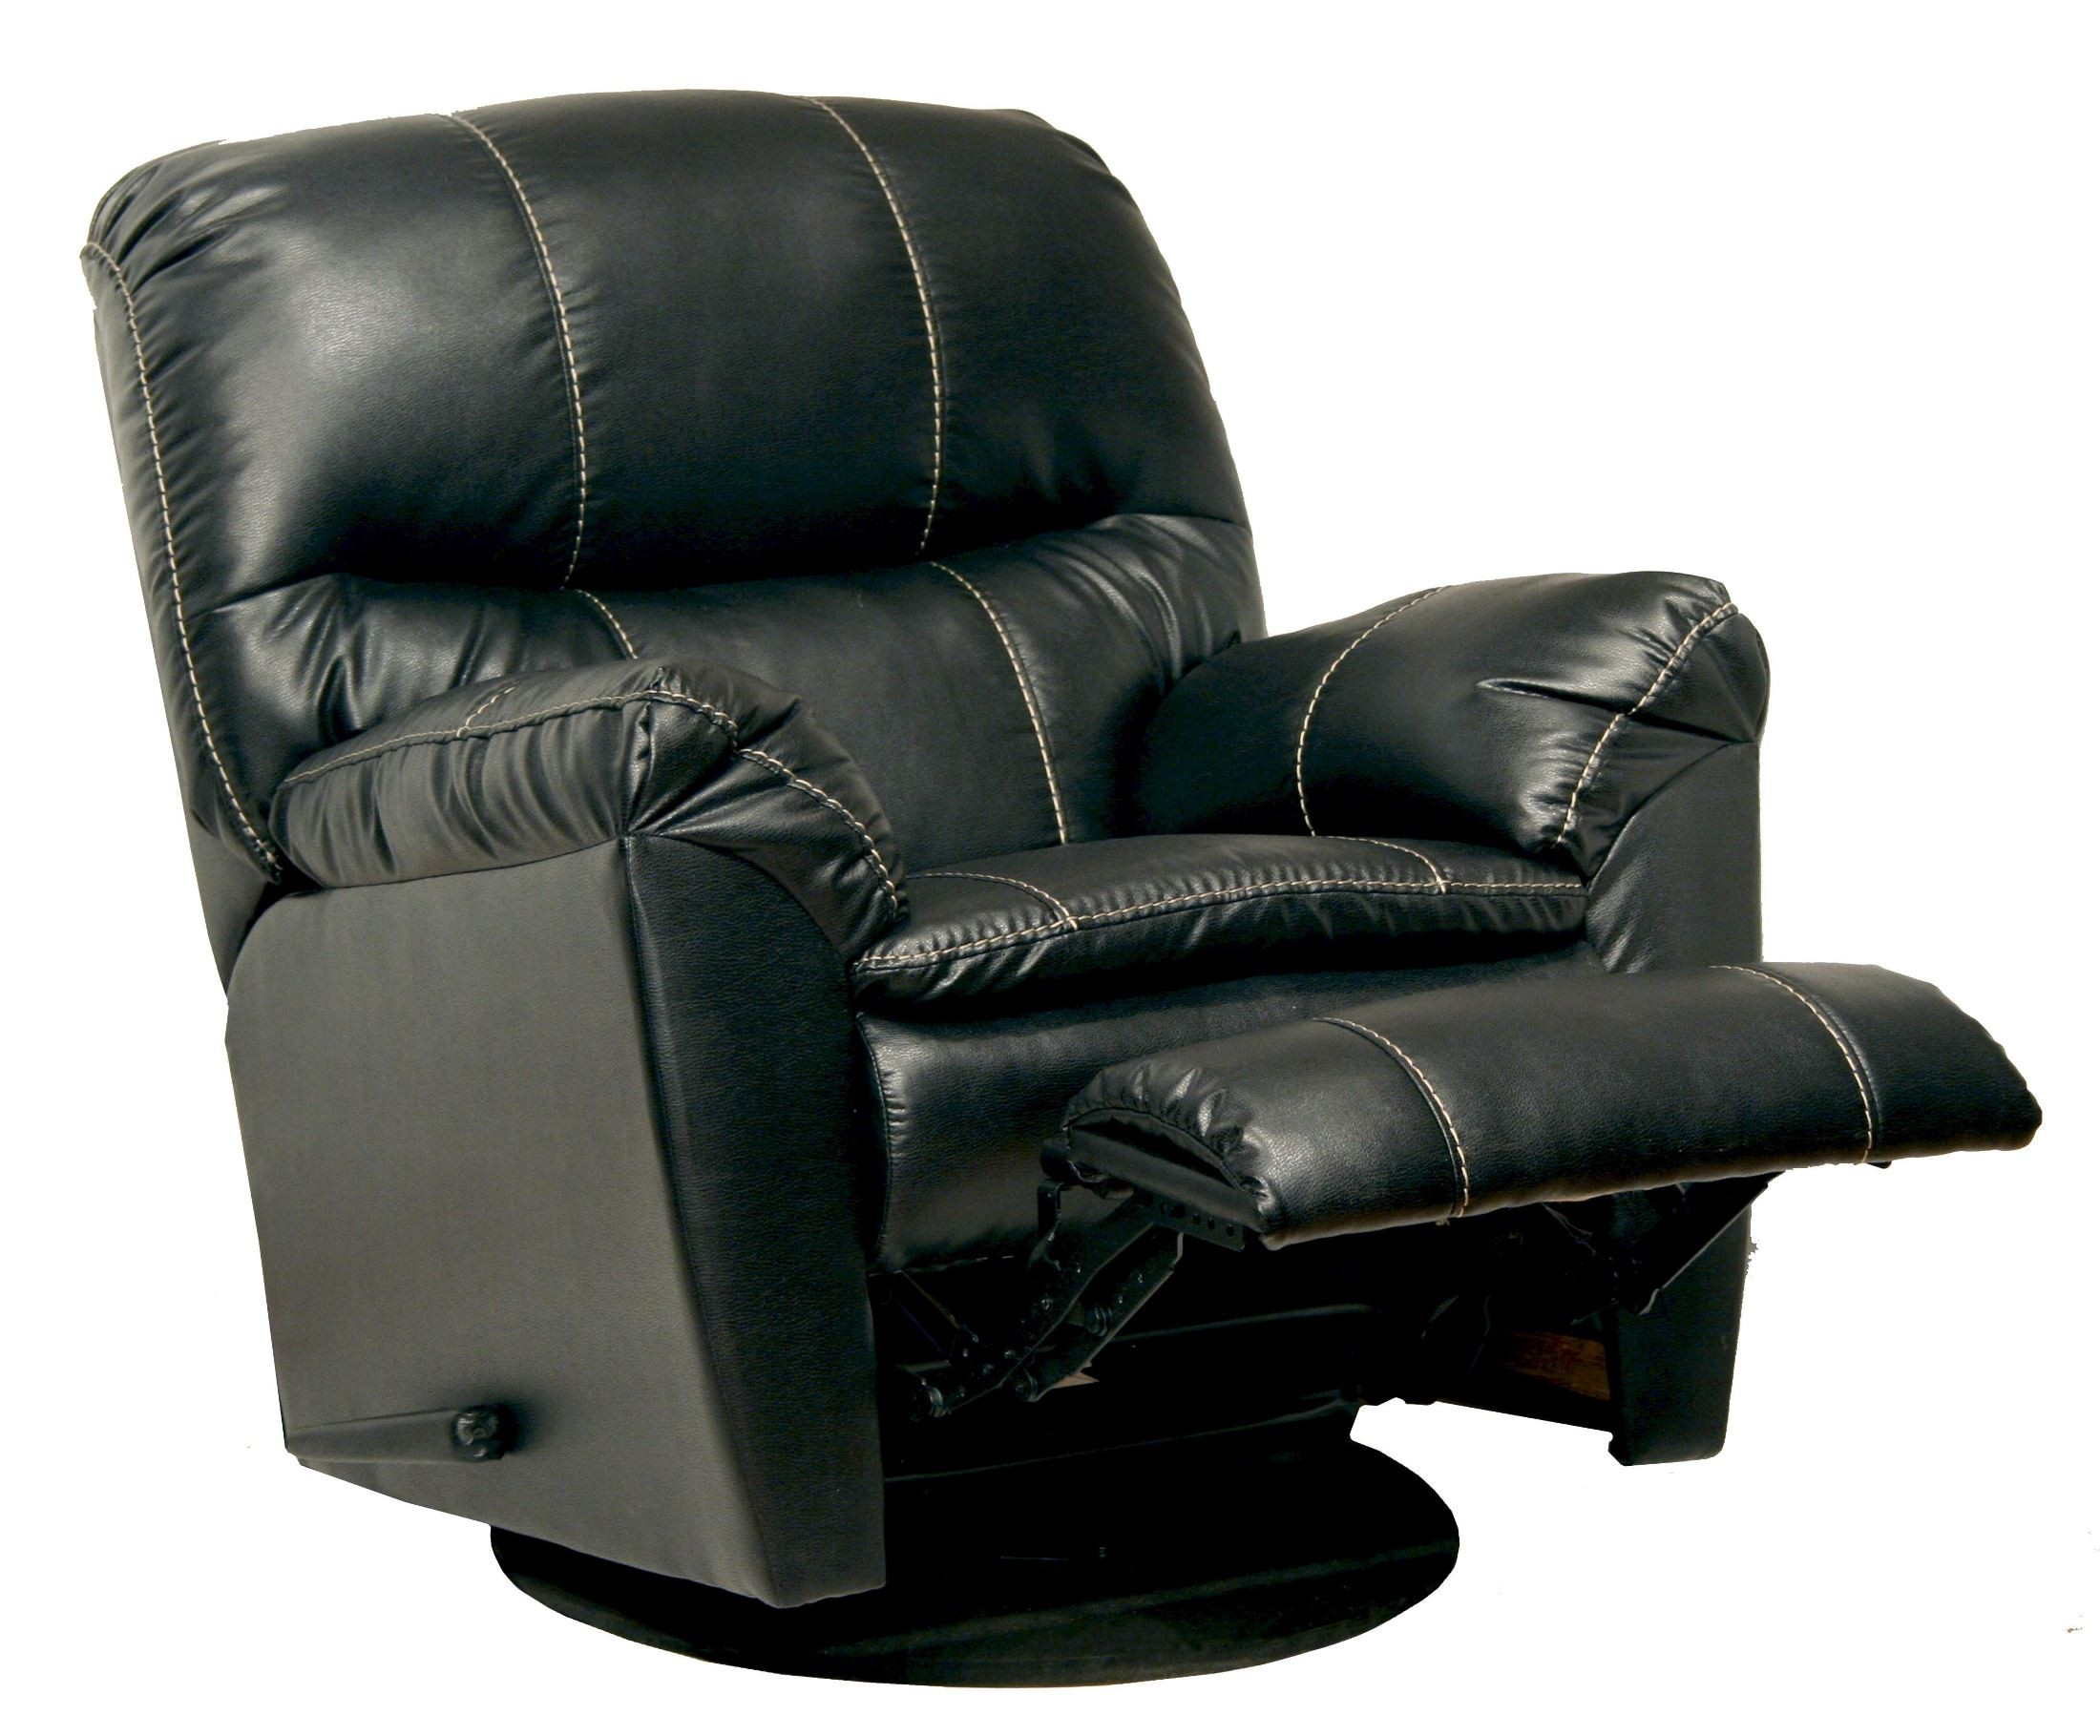 Cosmo Black Leather Swivel Glider Recliner from Catnapper